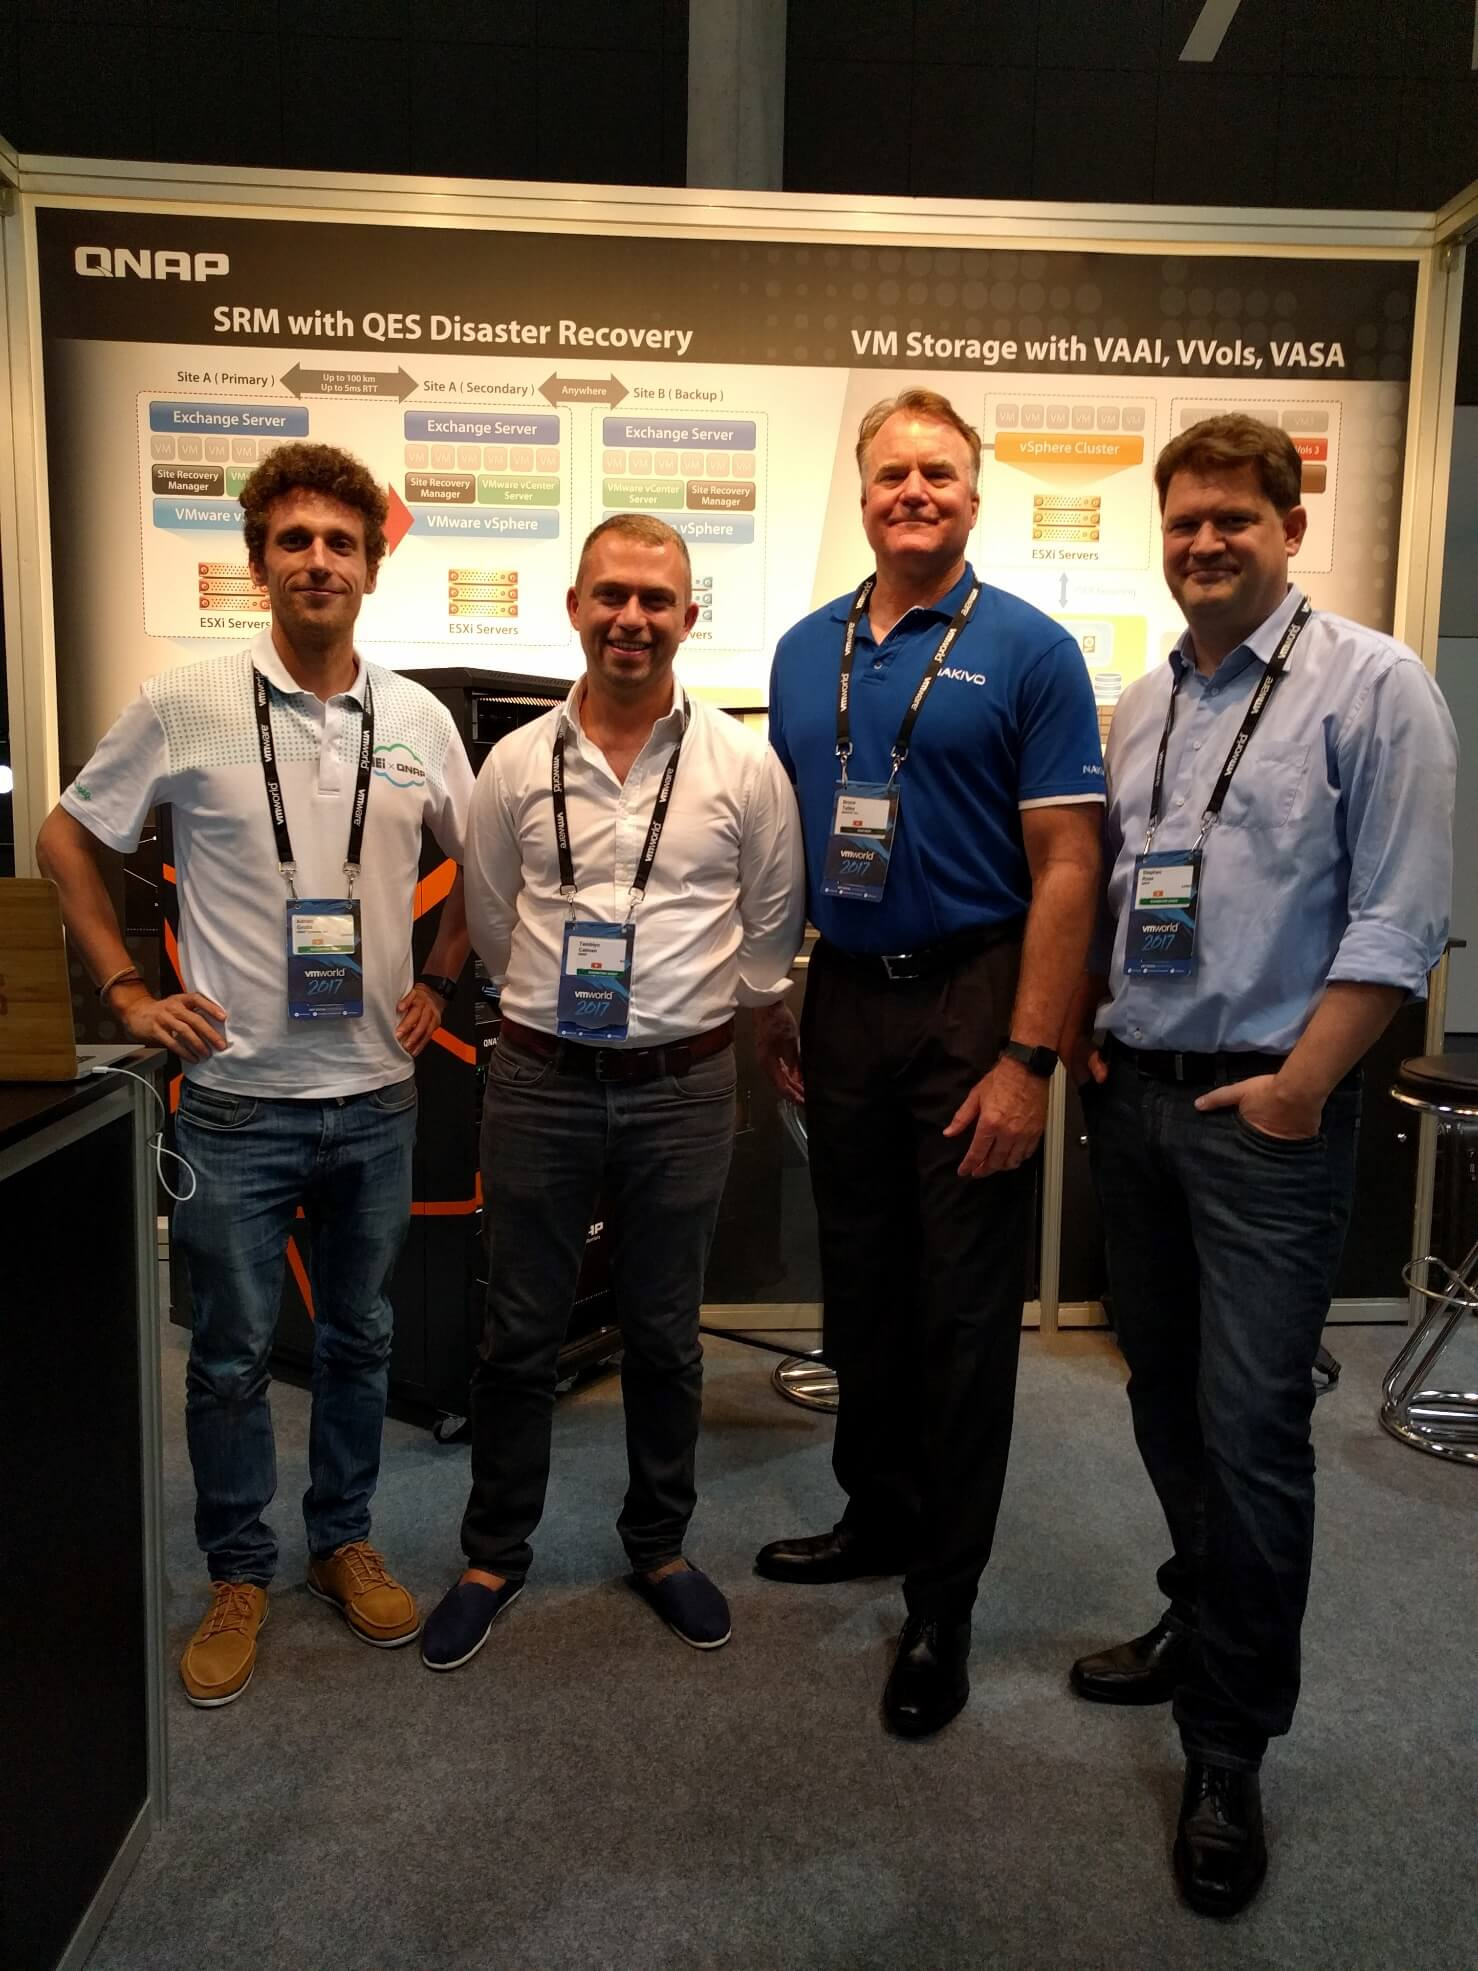 NAKIVO meets QNAP at VMworld